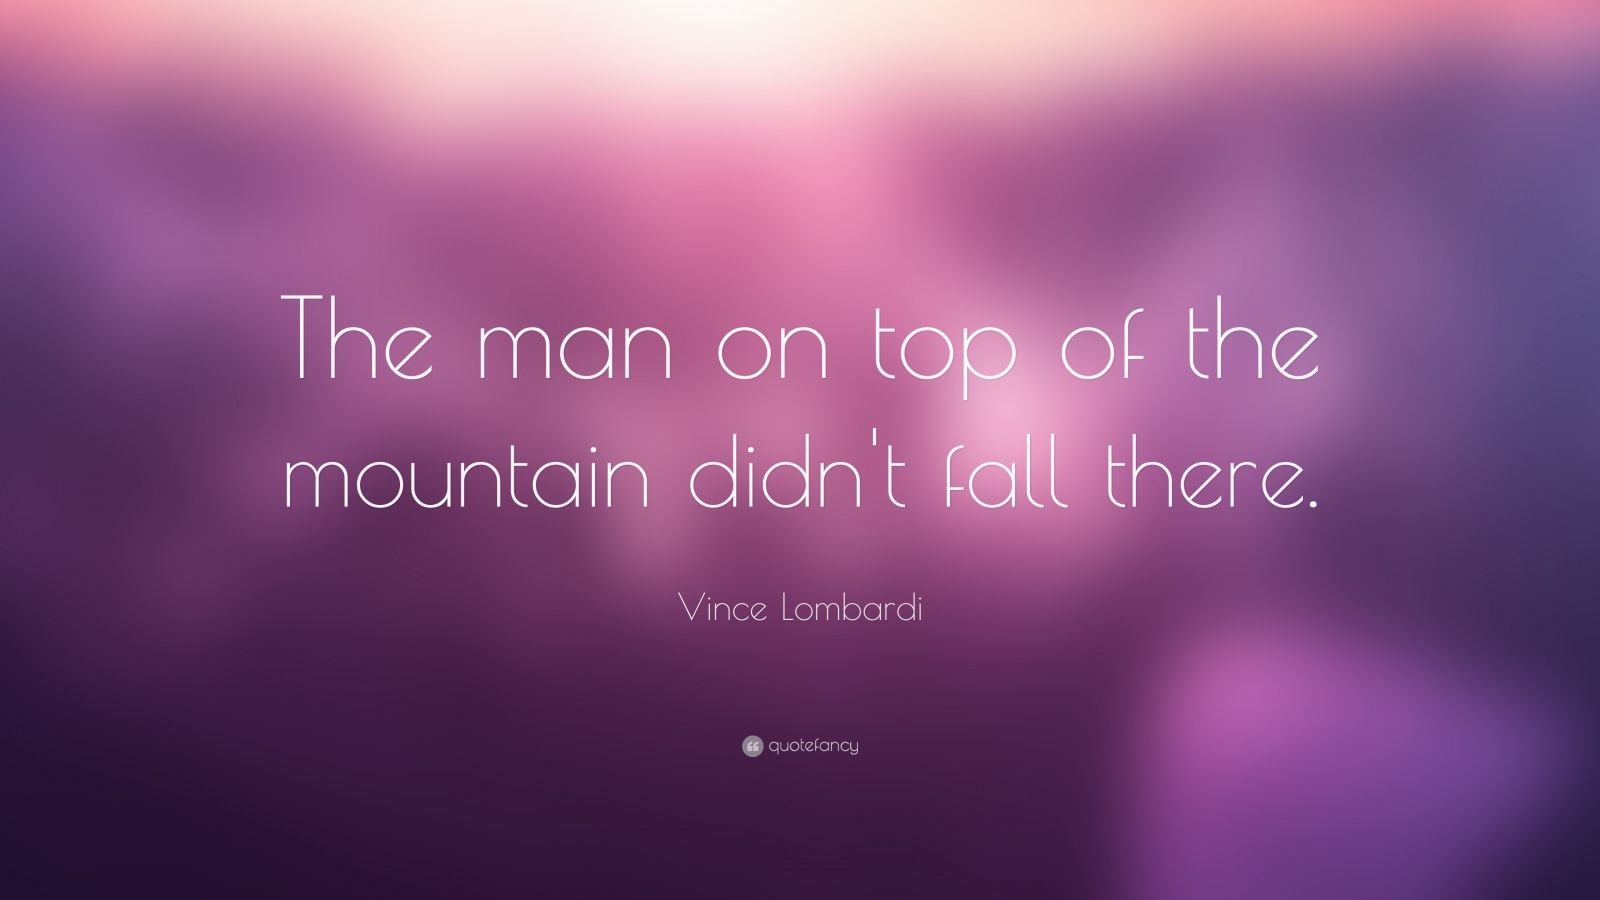 vince lombardi quote   u201cthe man on top of the mountain didn